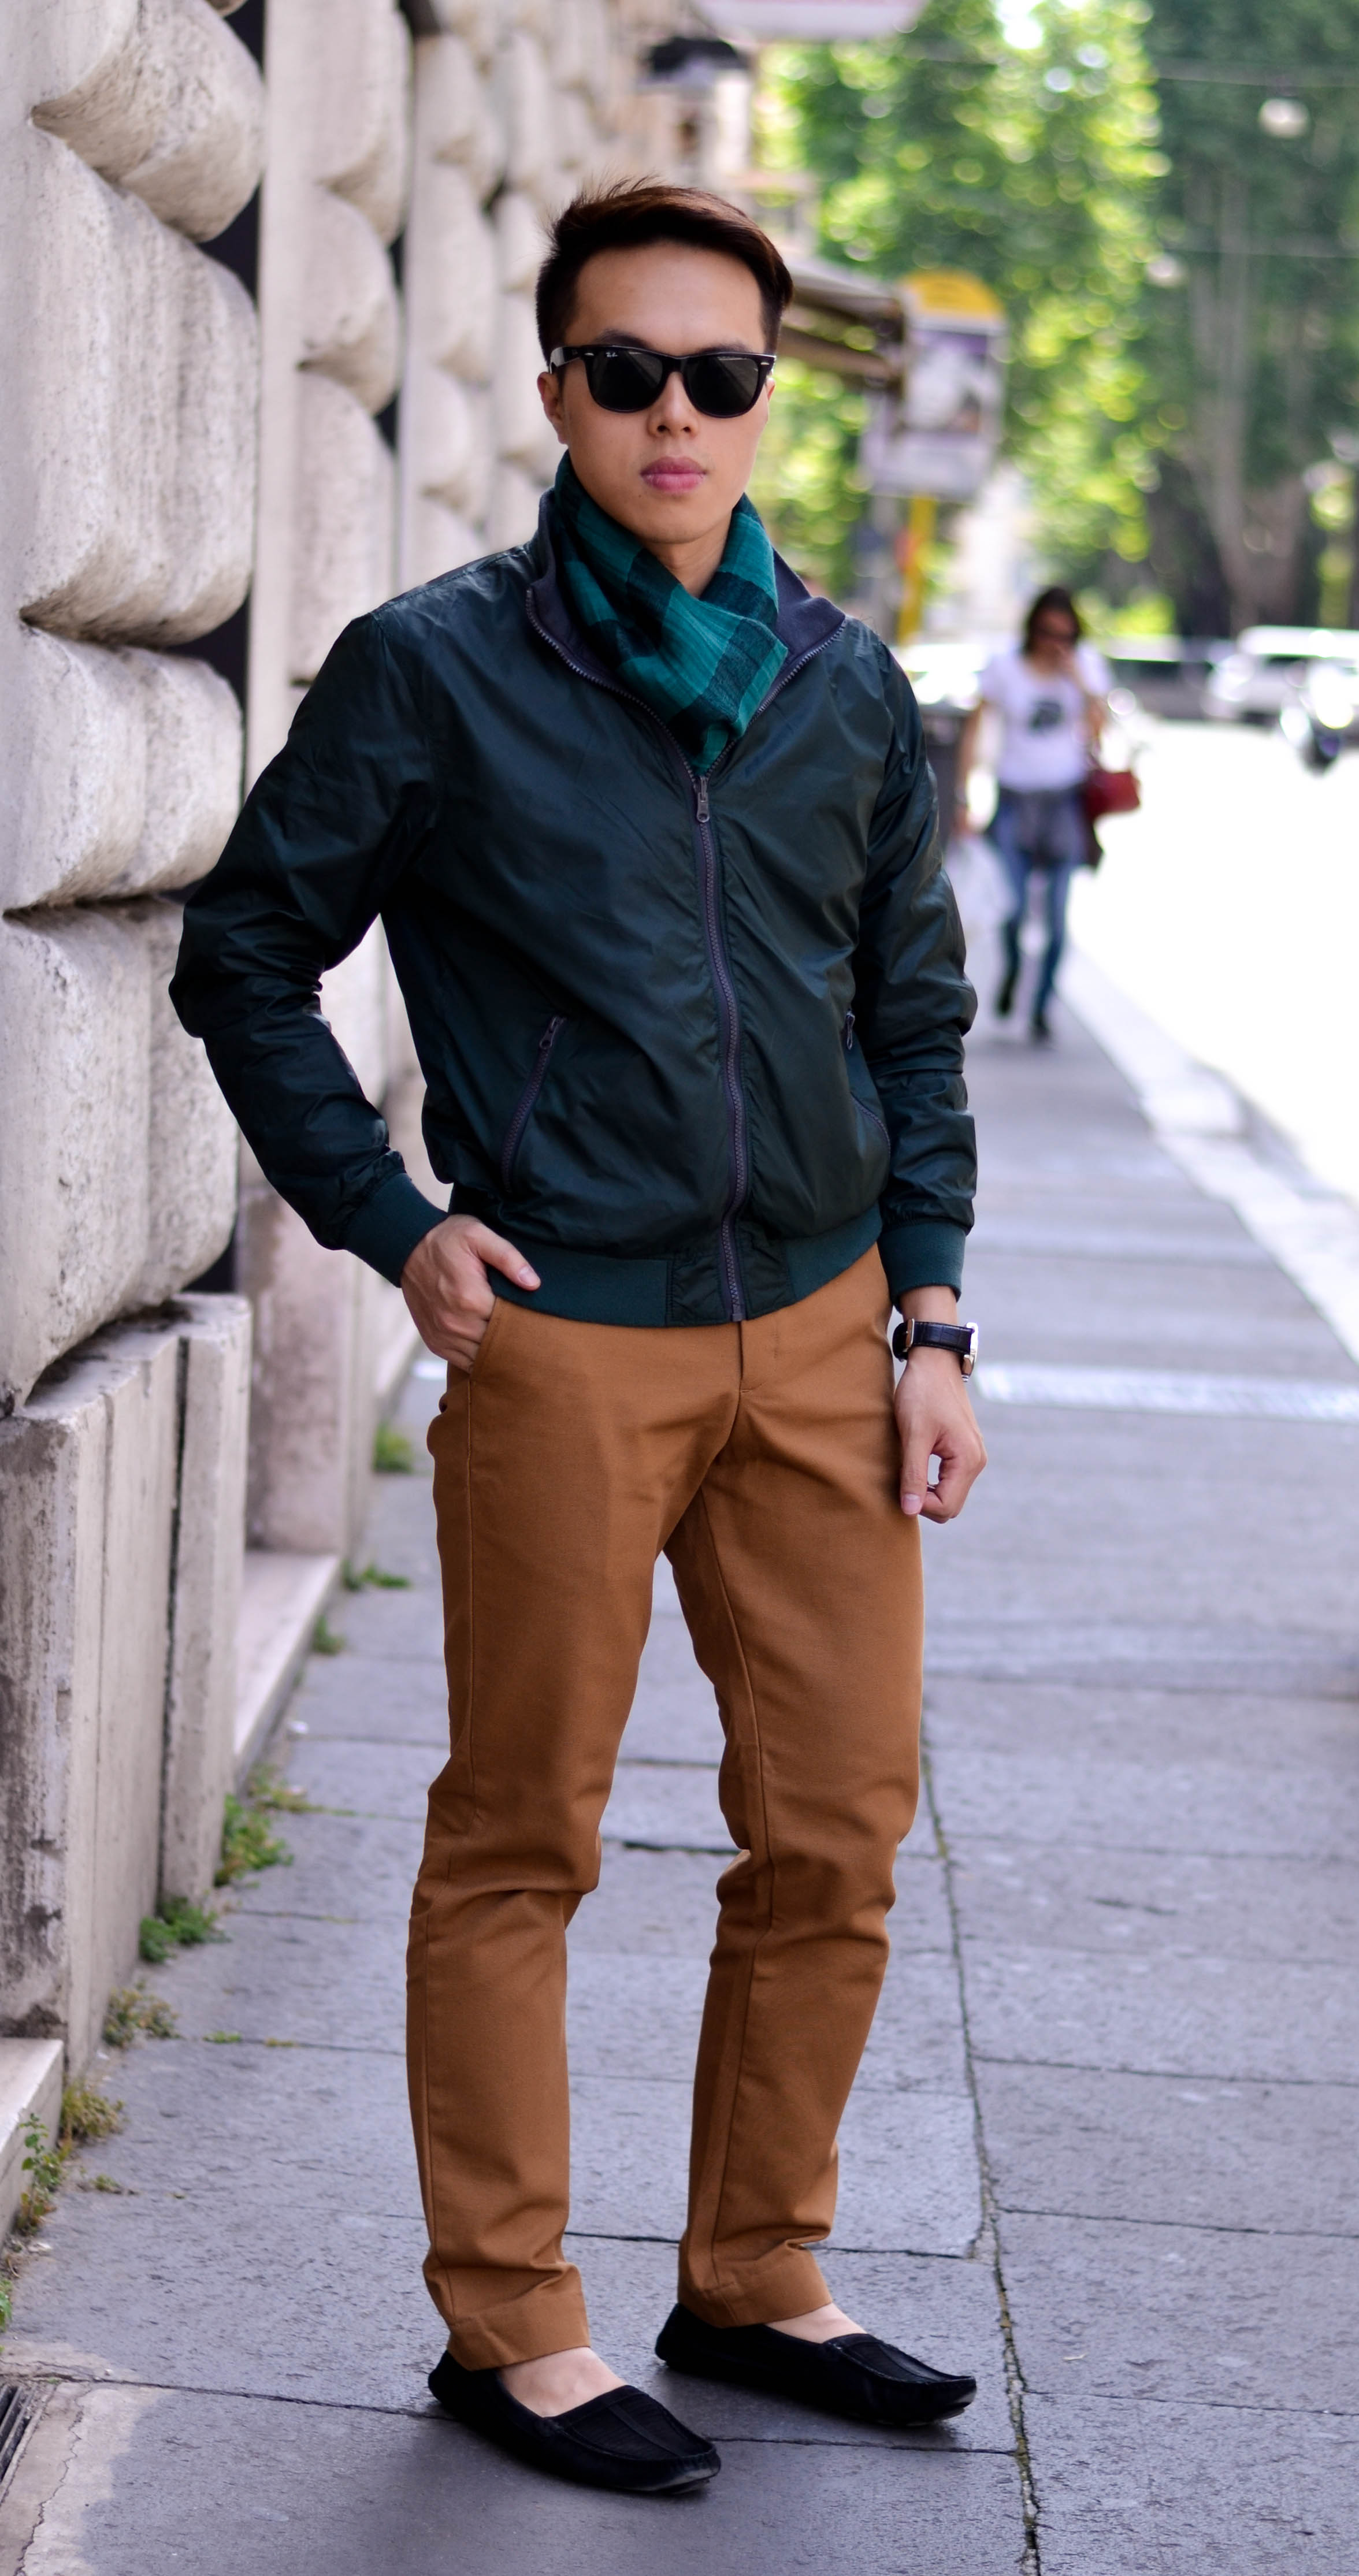 american apparel work pant, fendi suede loafer, rome, kenneth cole jacket